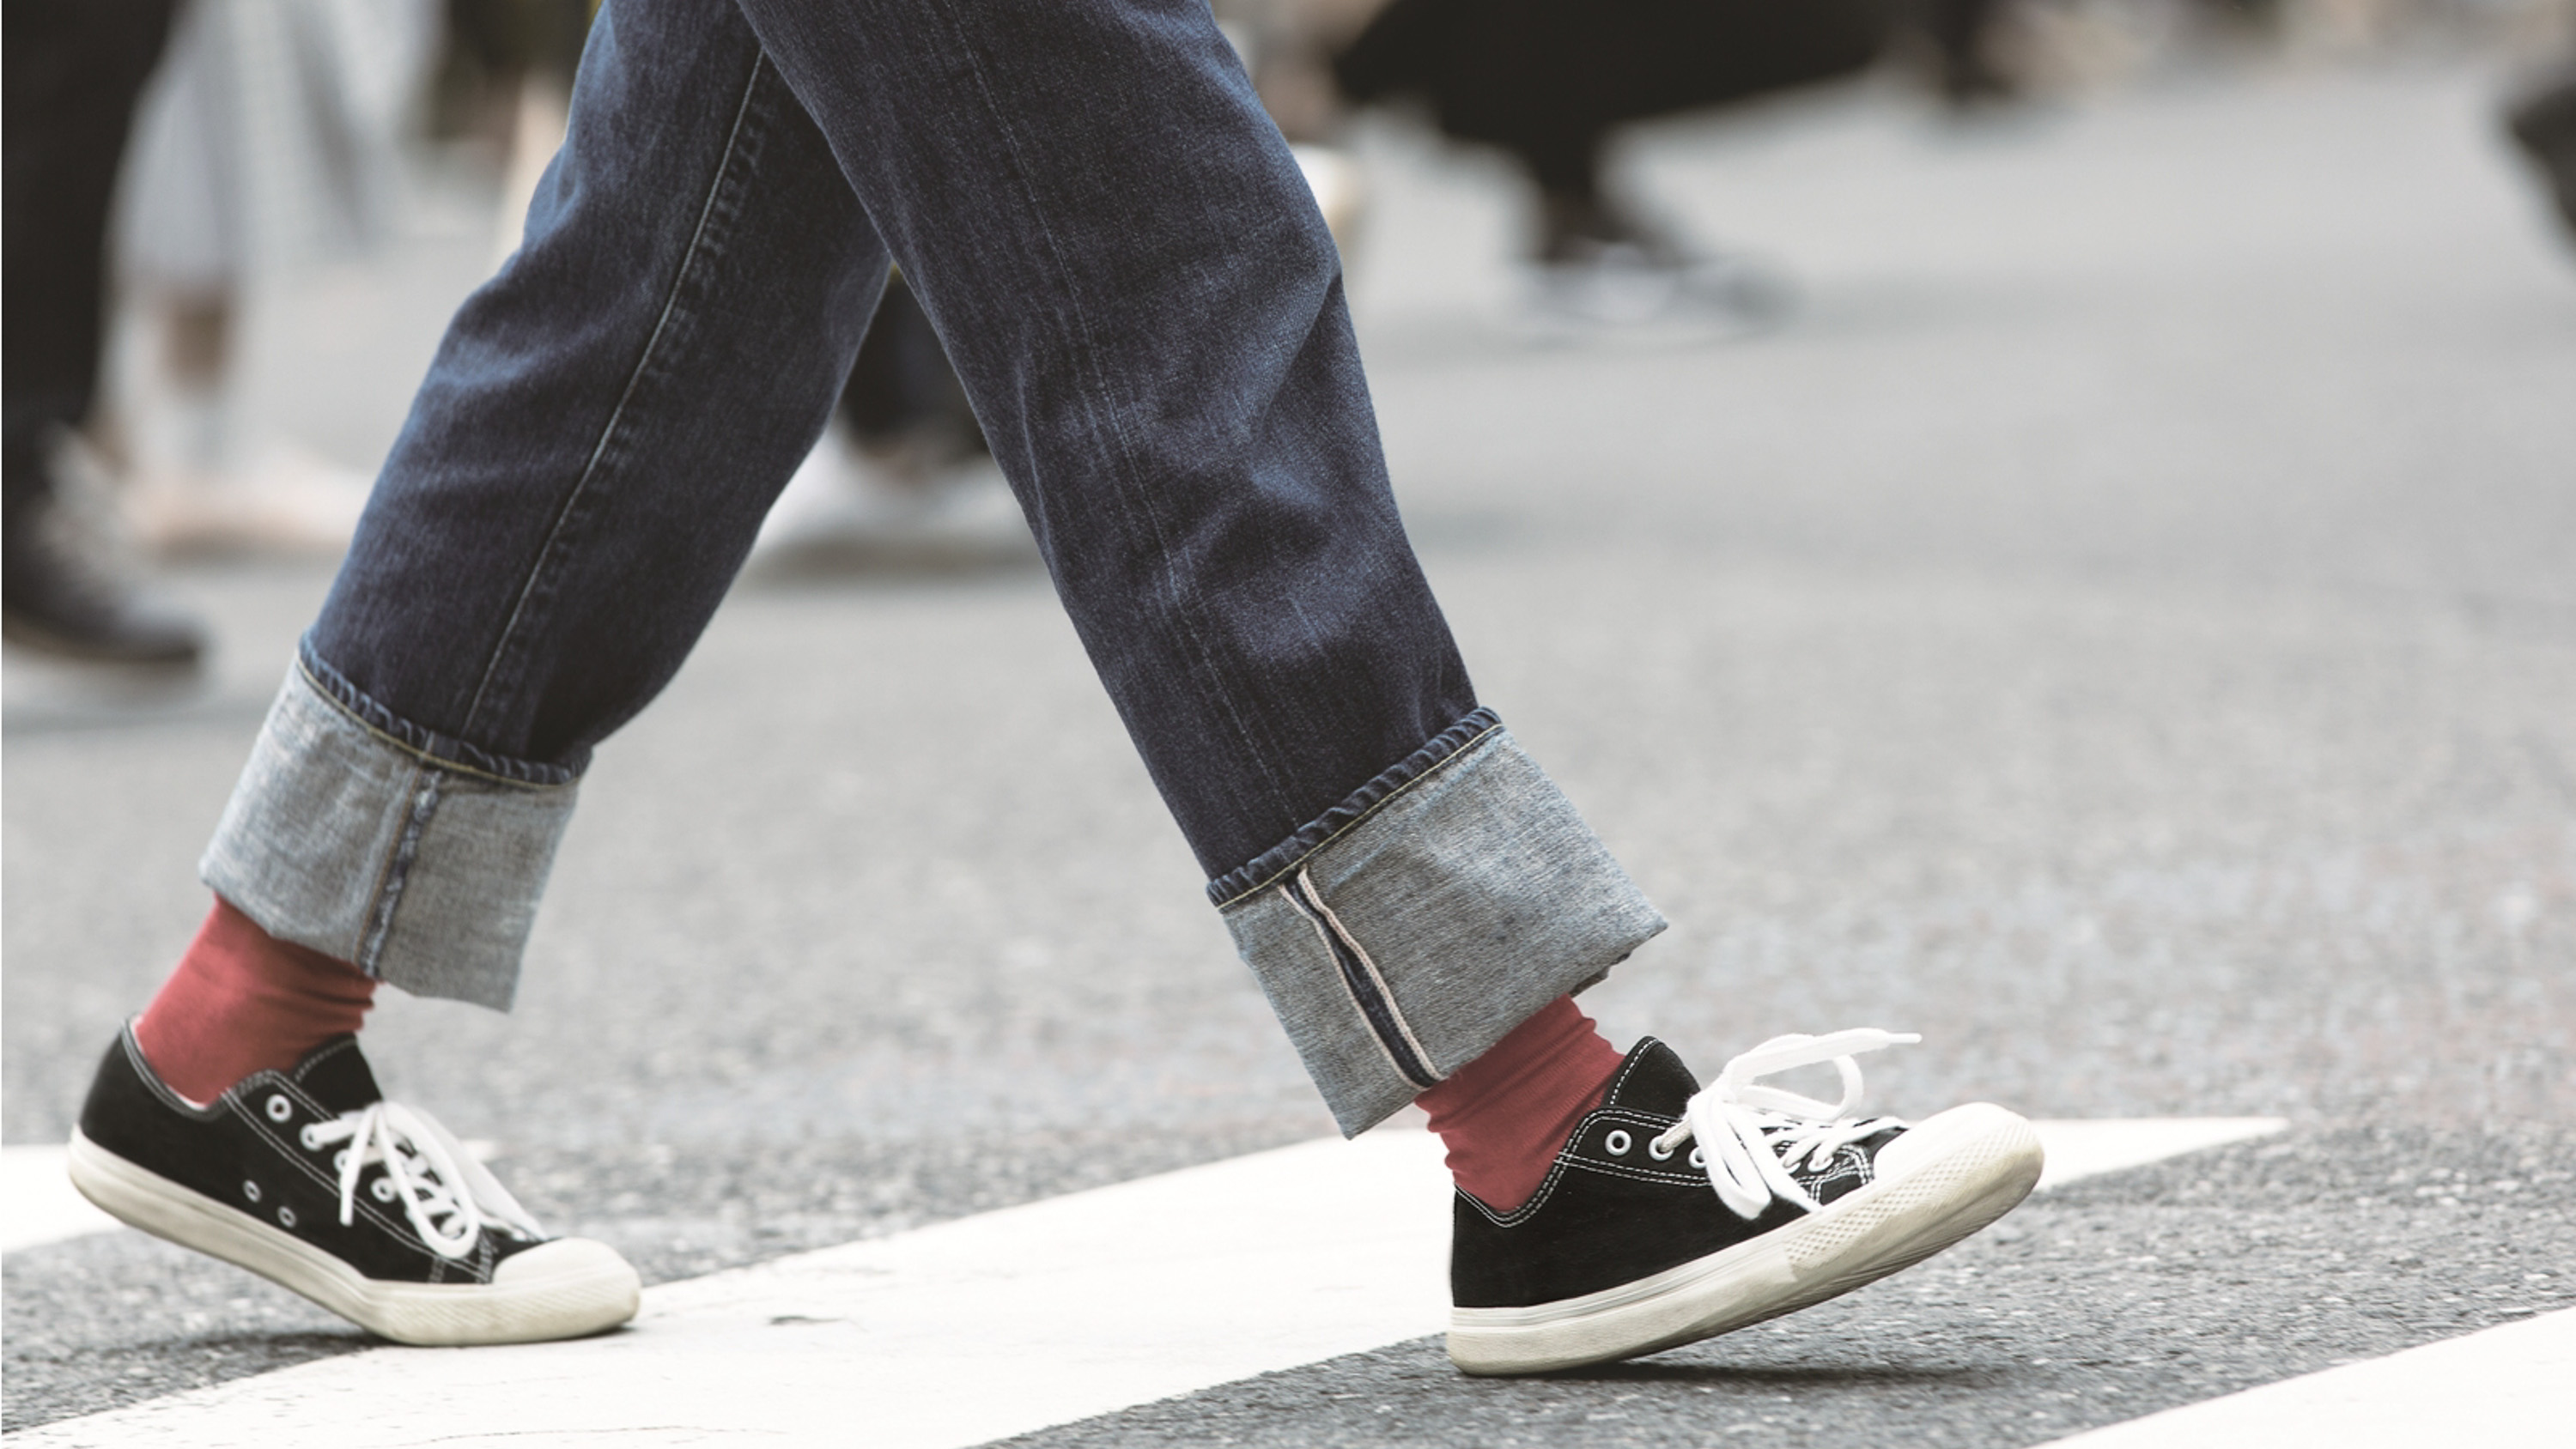 These water-repellent sneakers are